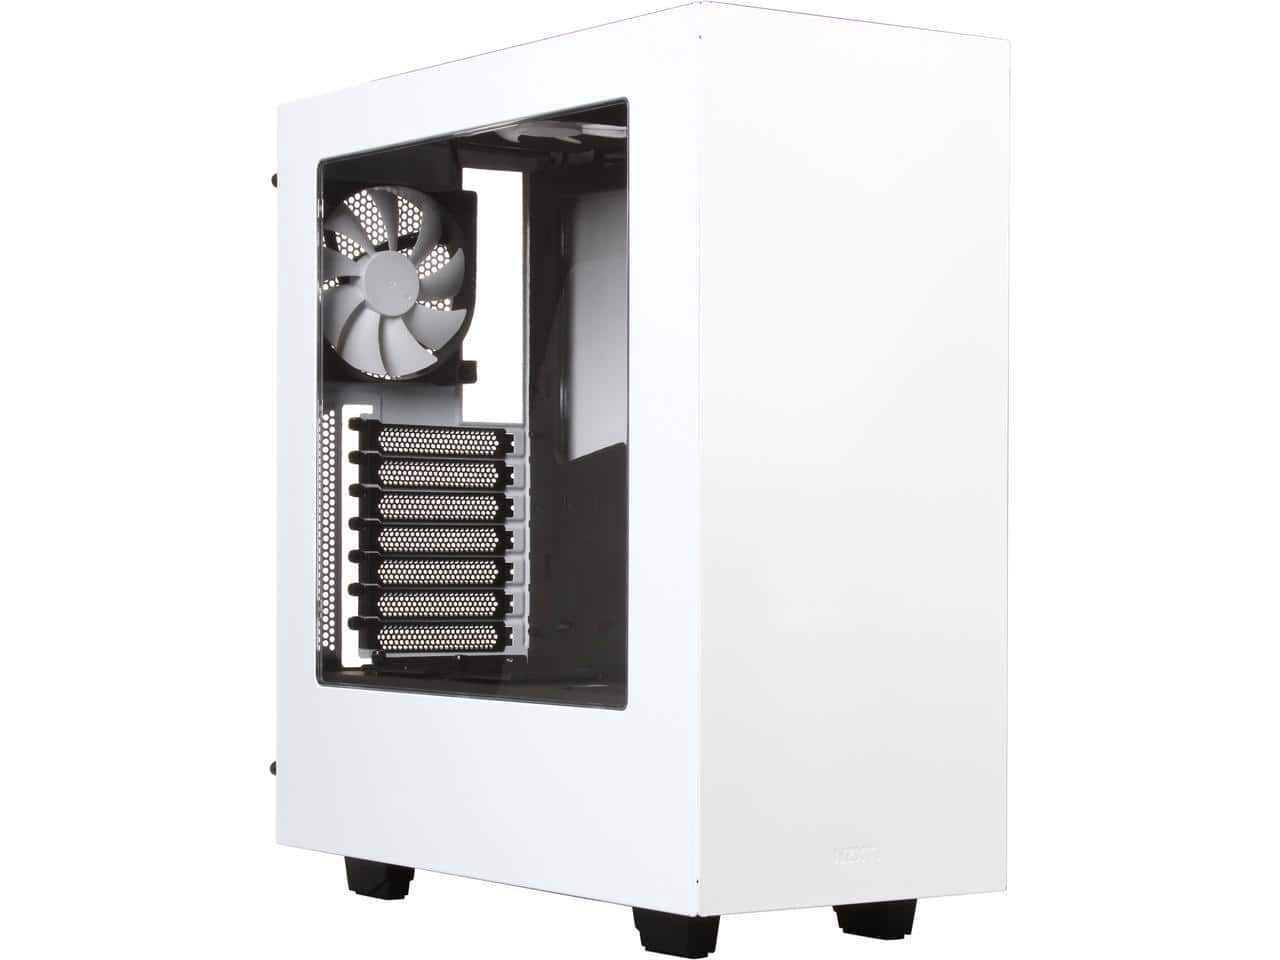 NZXT S340 Glossy White Steel ATX Mid Tower Case $59.99